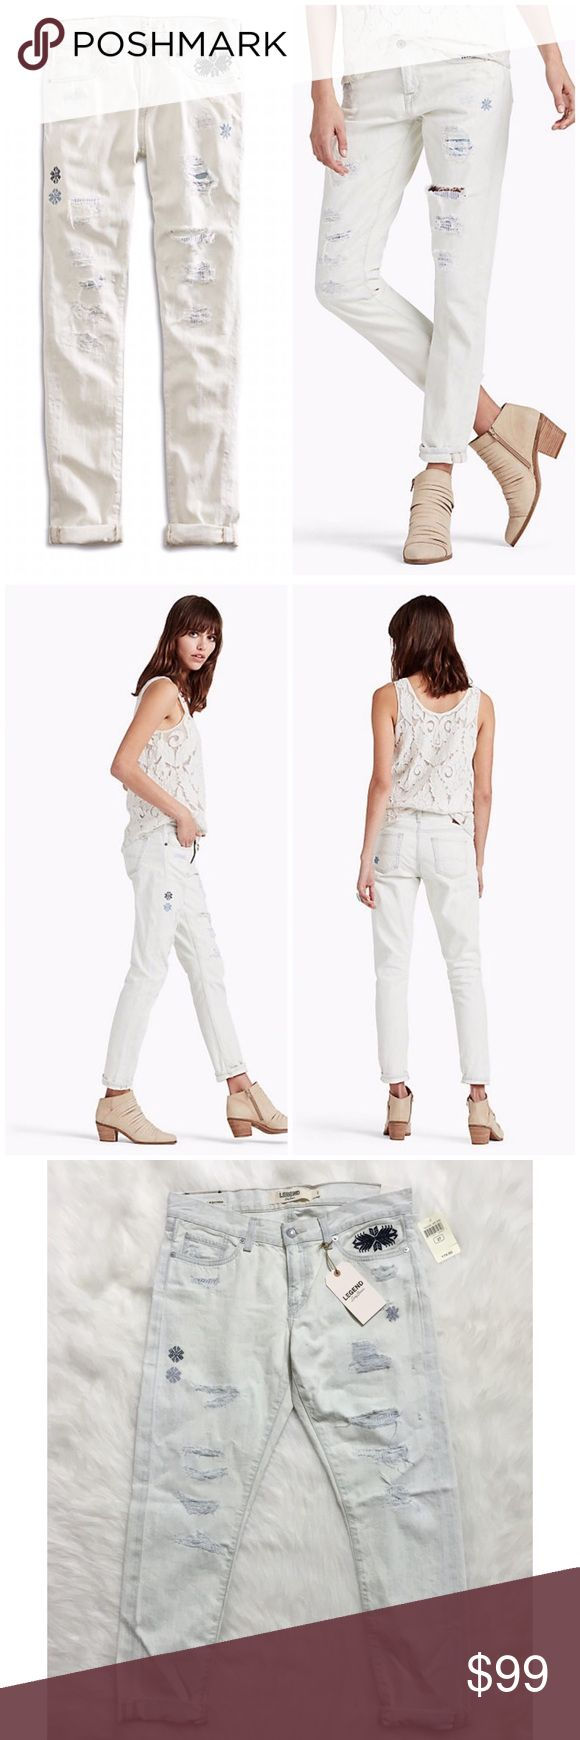 "Lucky Brand Legend Embroidered Sienna Boyfriend Brand new with tags, women's size 4 / 27. These Lucky Brand Legend Embroidered Sienna Slim Boyfriend Distressed Destroyed Jeans are so unique! Love the embroidery and rips! Crafted with premium selvedge denim in Los Angeles, CA. Mid-rise (8.5 inch front rise and 13.75 inch back rise to provide appropriate coverage when seated). Slim through the hip and thigh, with a 12 inch boyfriend leg opening. Inseam is 28"" uncuffed. White wash jeans with…"